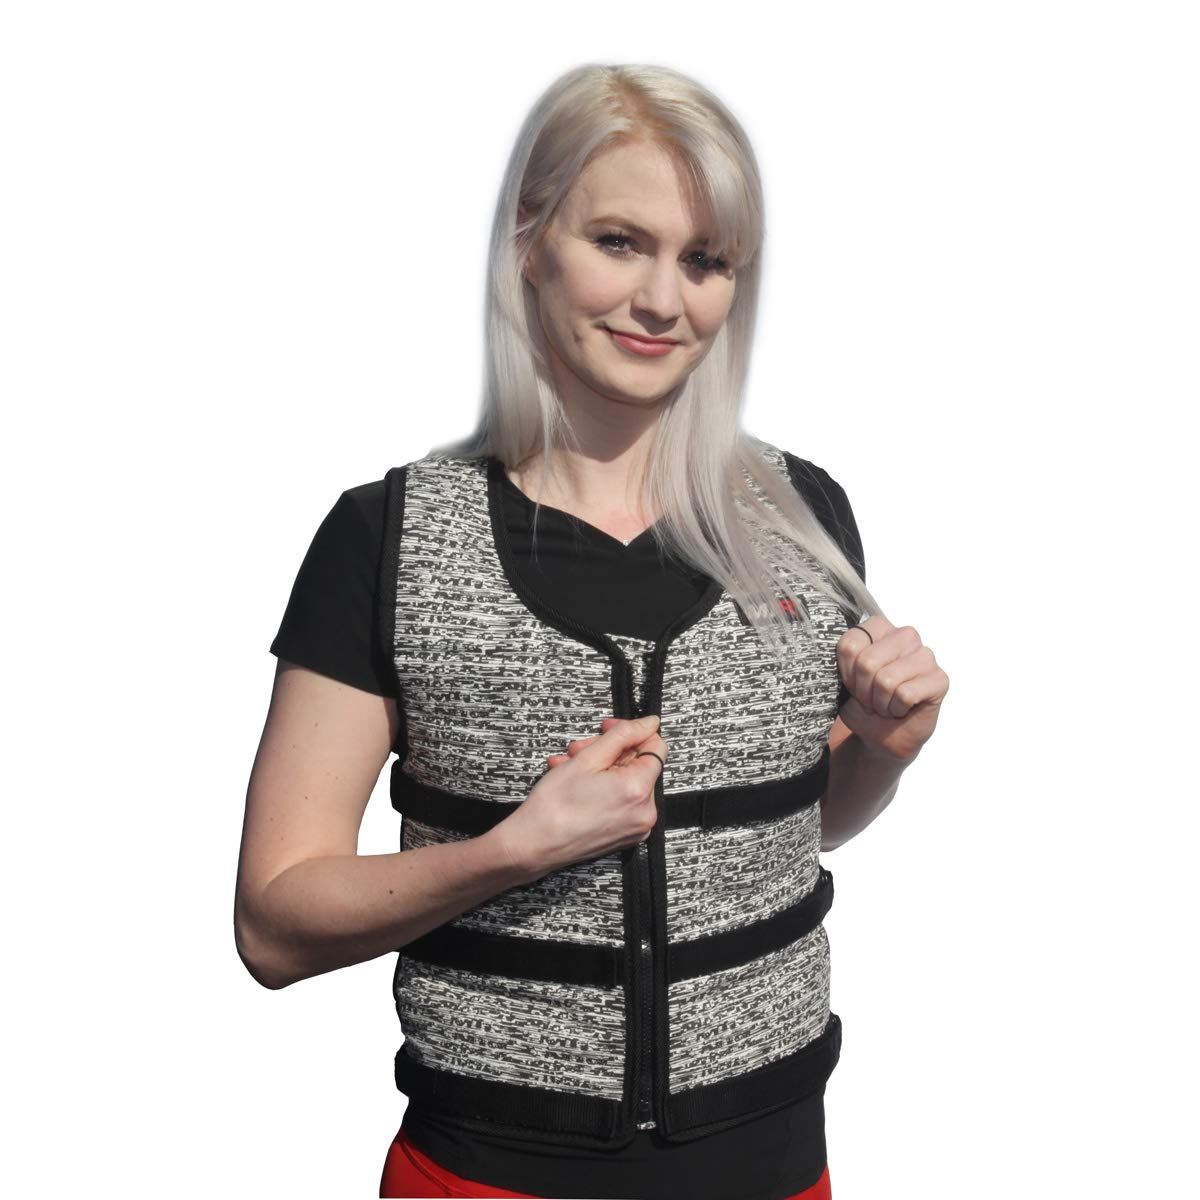 Mir Super Slim AIR Flow Adjustable Weighted Vest Machine Washable. for Men & Women (Black - 16LBS) by Mir (Image #7)